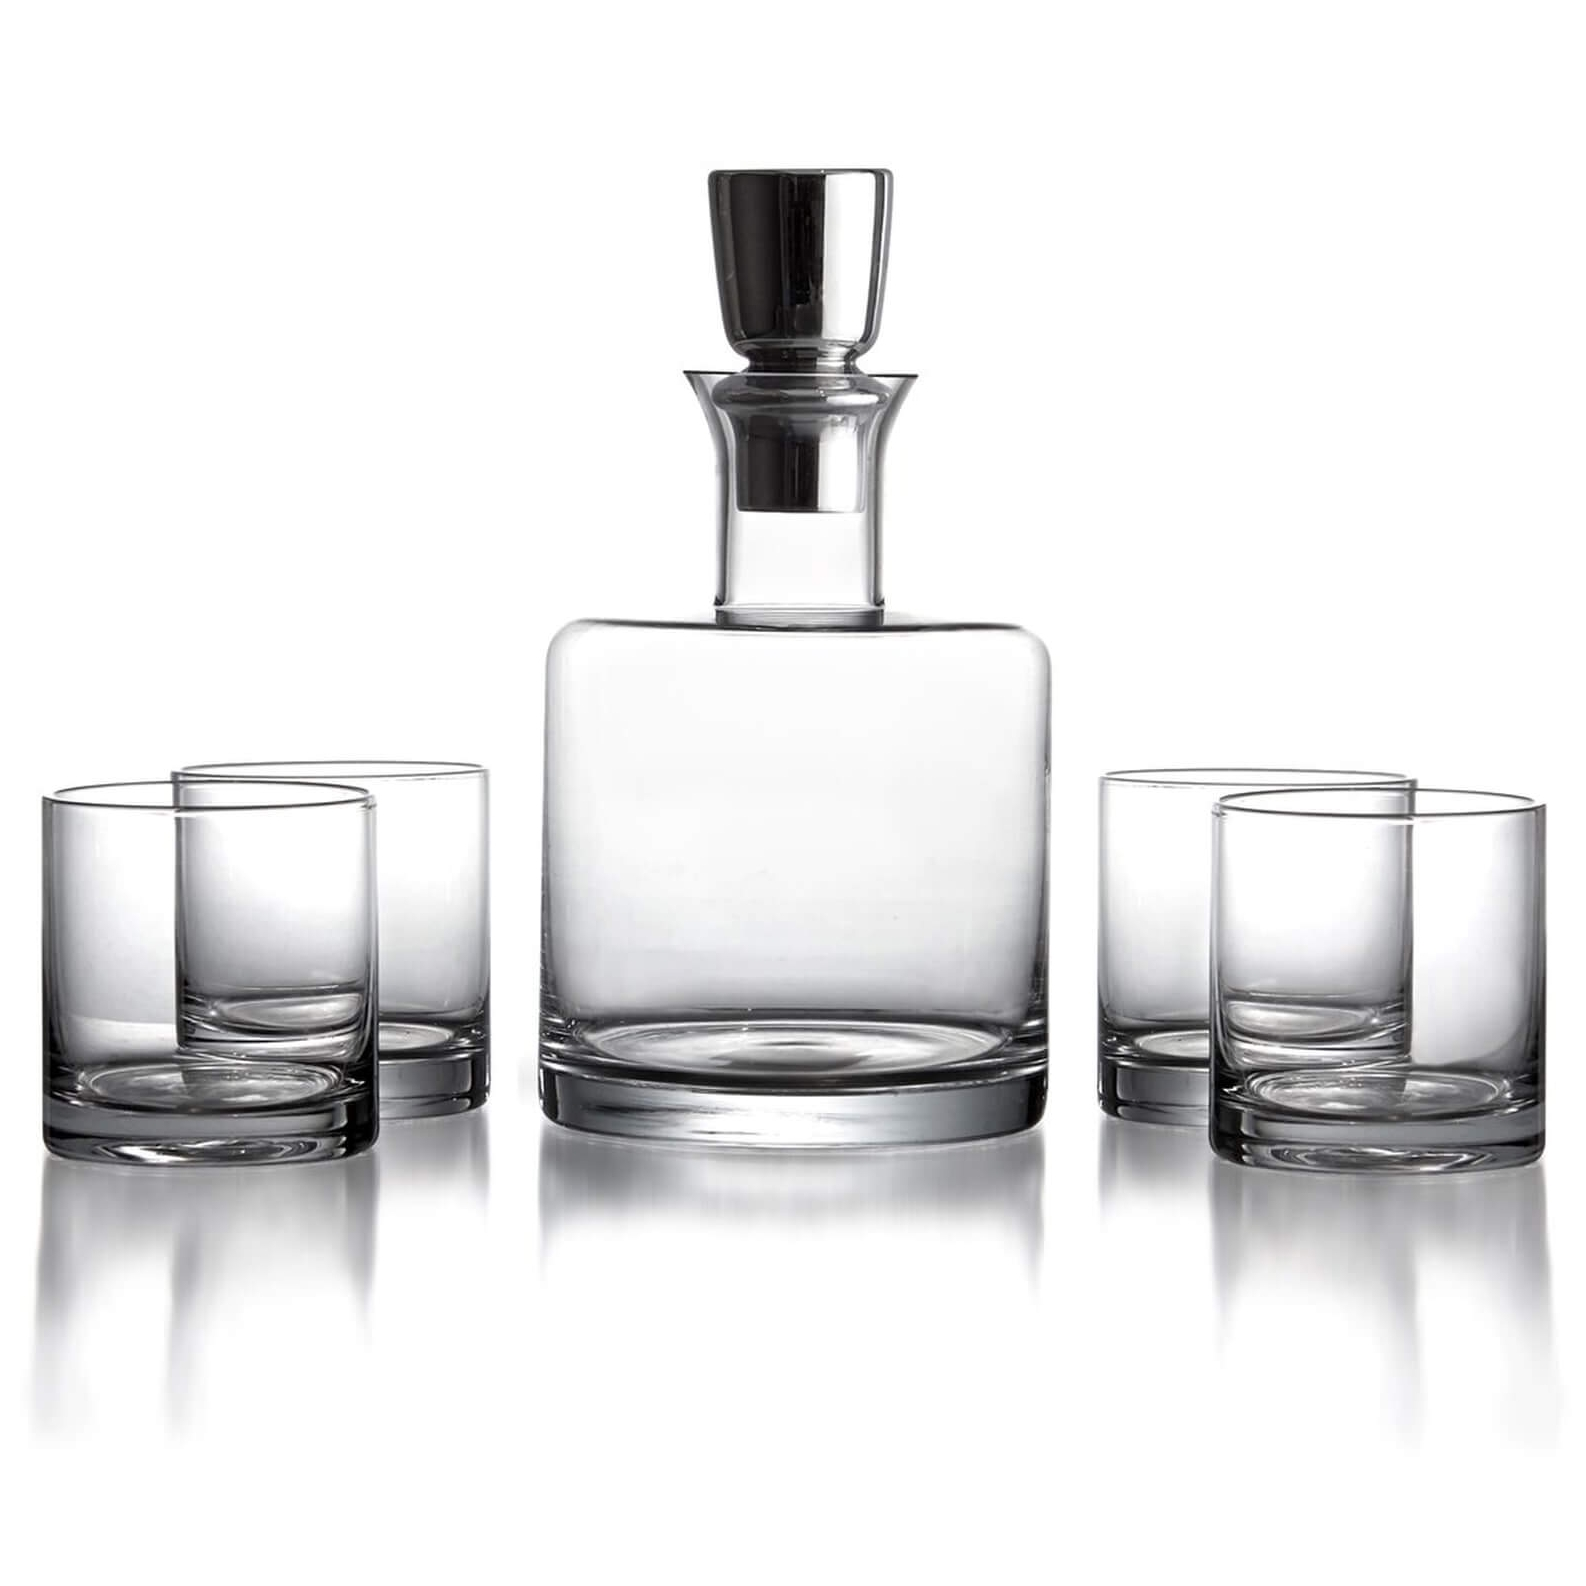 American Atelier Linus Decanter & Whiskey Glasses Nordstrom Anniversary Sale